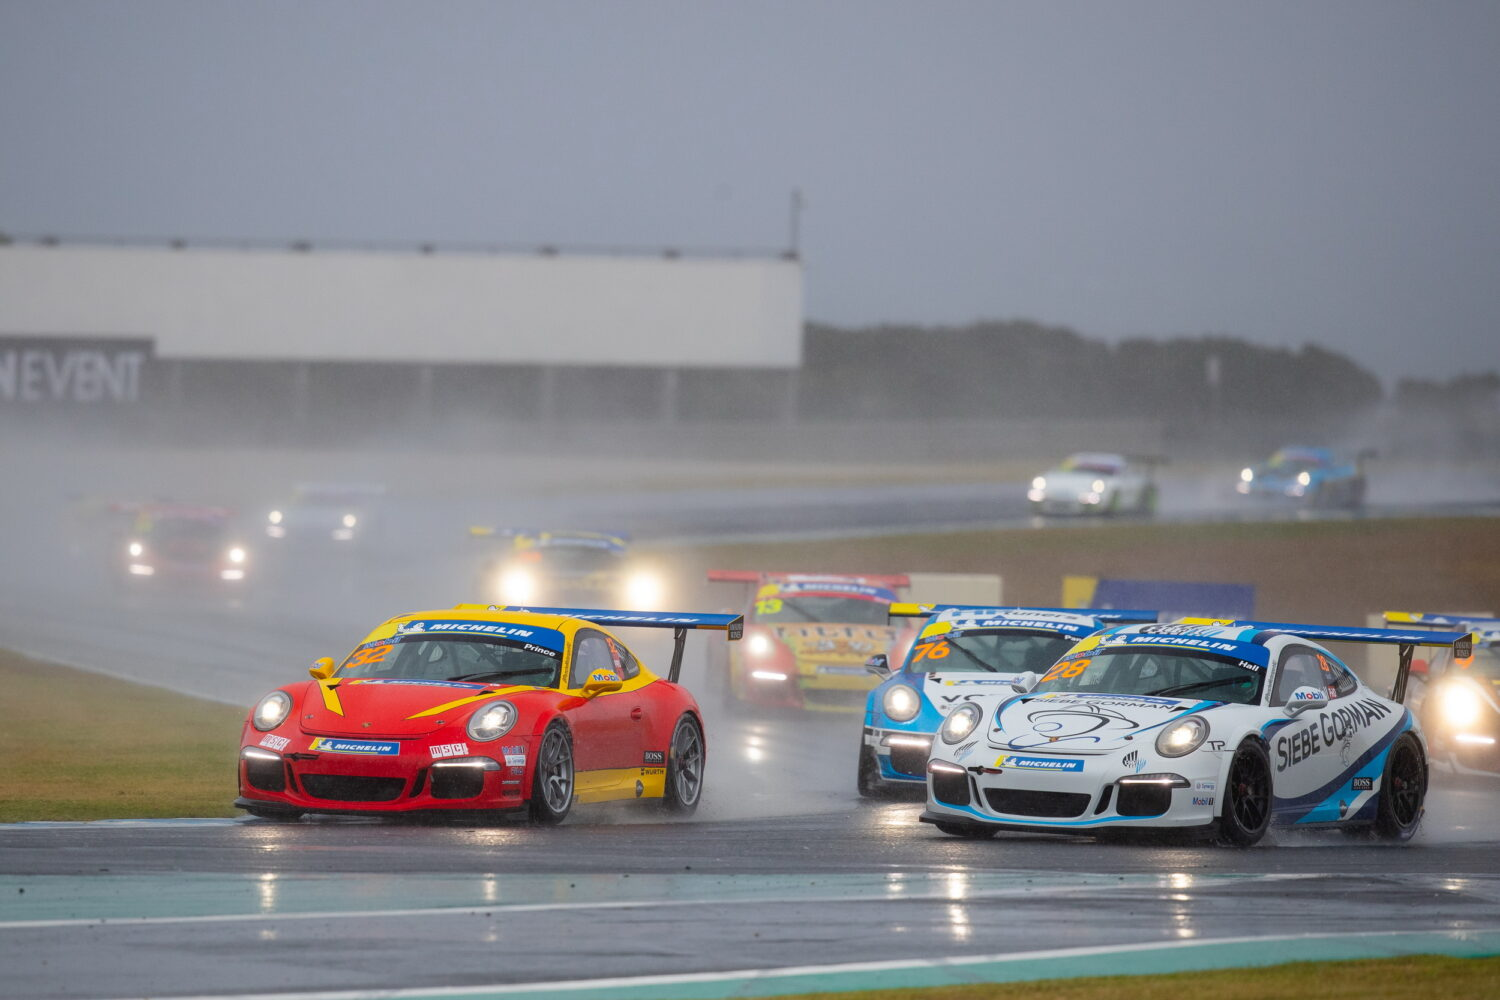 Courtney Prince and  Bayley Hall racing in wet conditions at Phillip Island. Porsche Michelin Sprint Challenge at Phillip Island, March 2021.